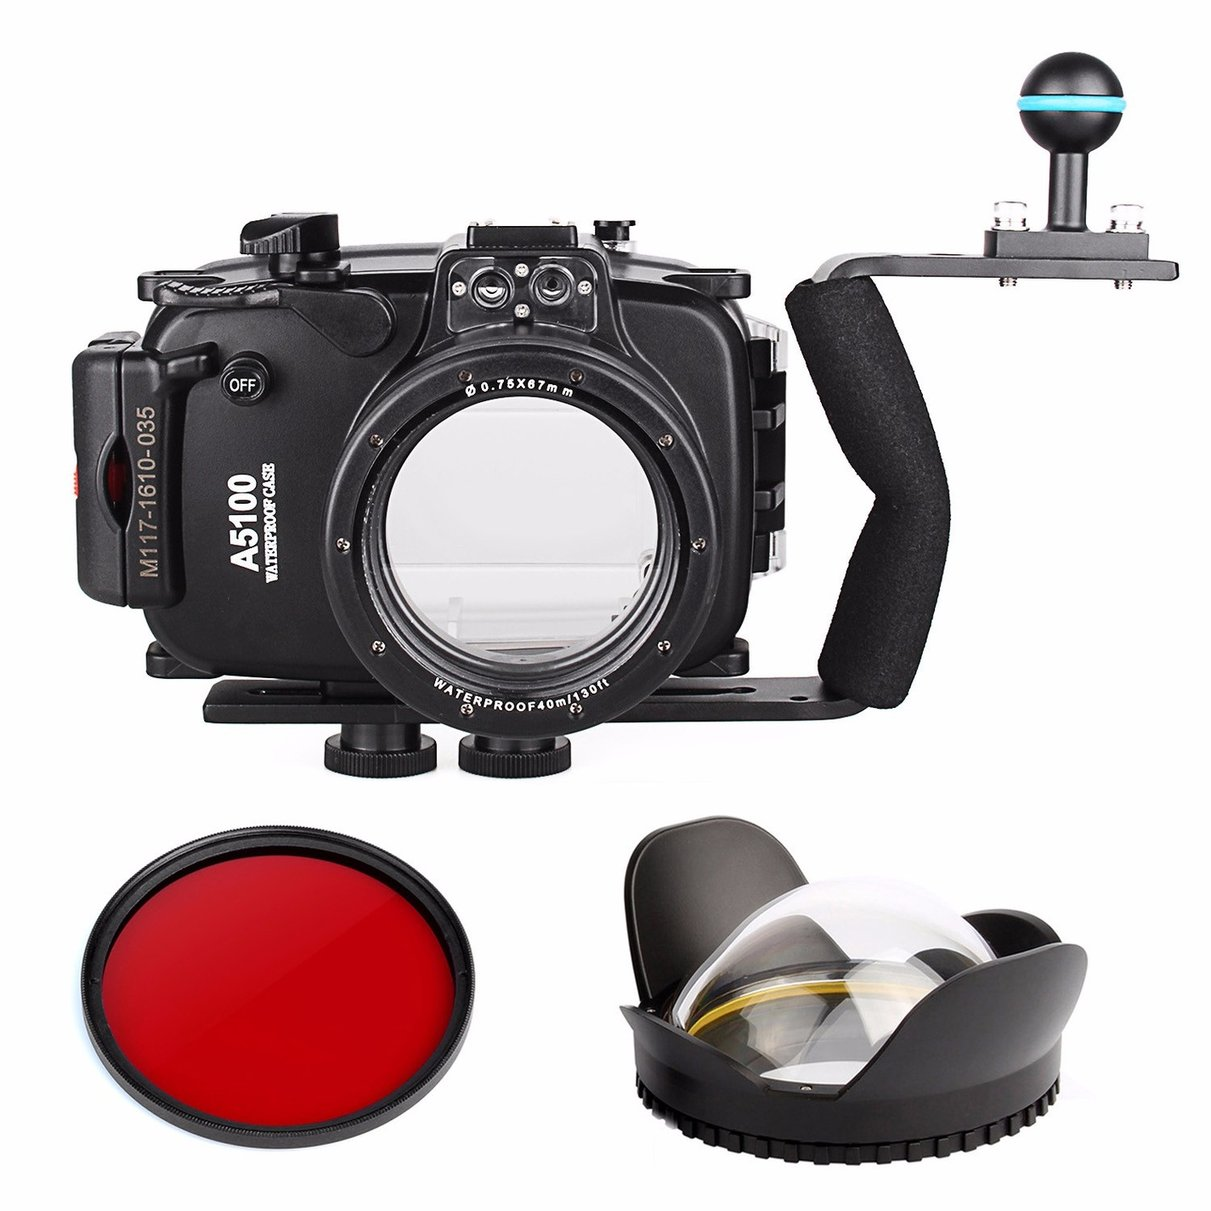 40m 130ft Waterproof Underwater Camera Housing Case Bag for Sony A5100 16-50mm Lens + Diving handle + Fisheye Lens + Red Filter 40m 130ft waterproof underwater camera diving housing case aluminum handle for sony a7 a7r a7s 28 70mm lens camera